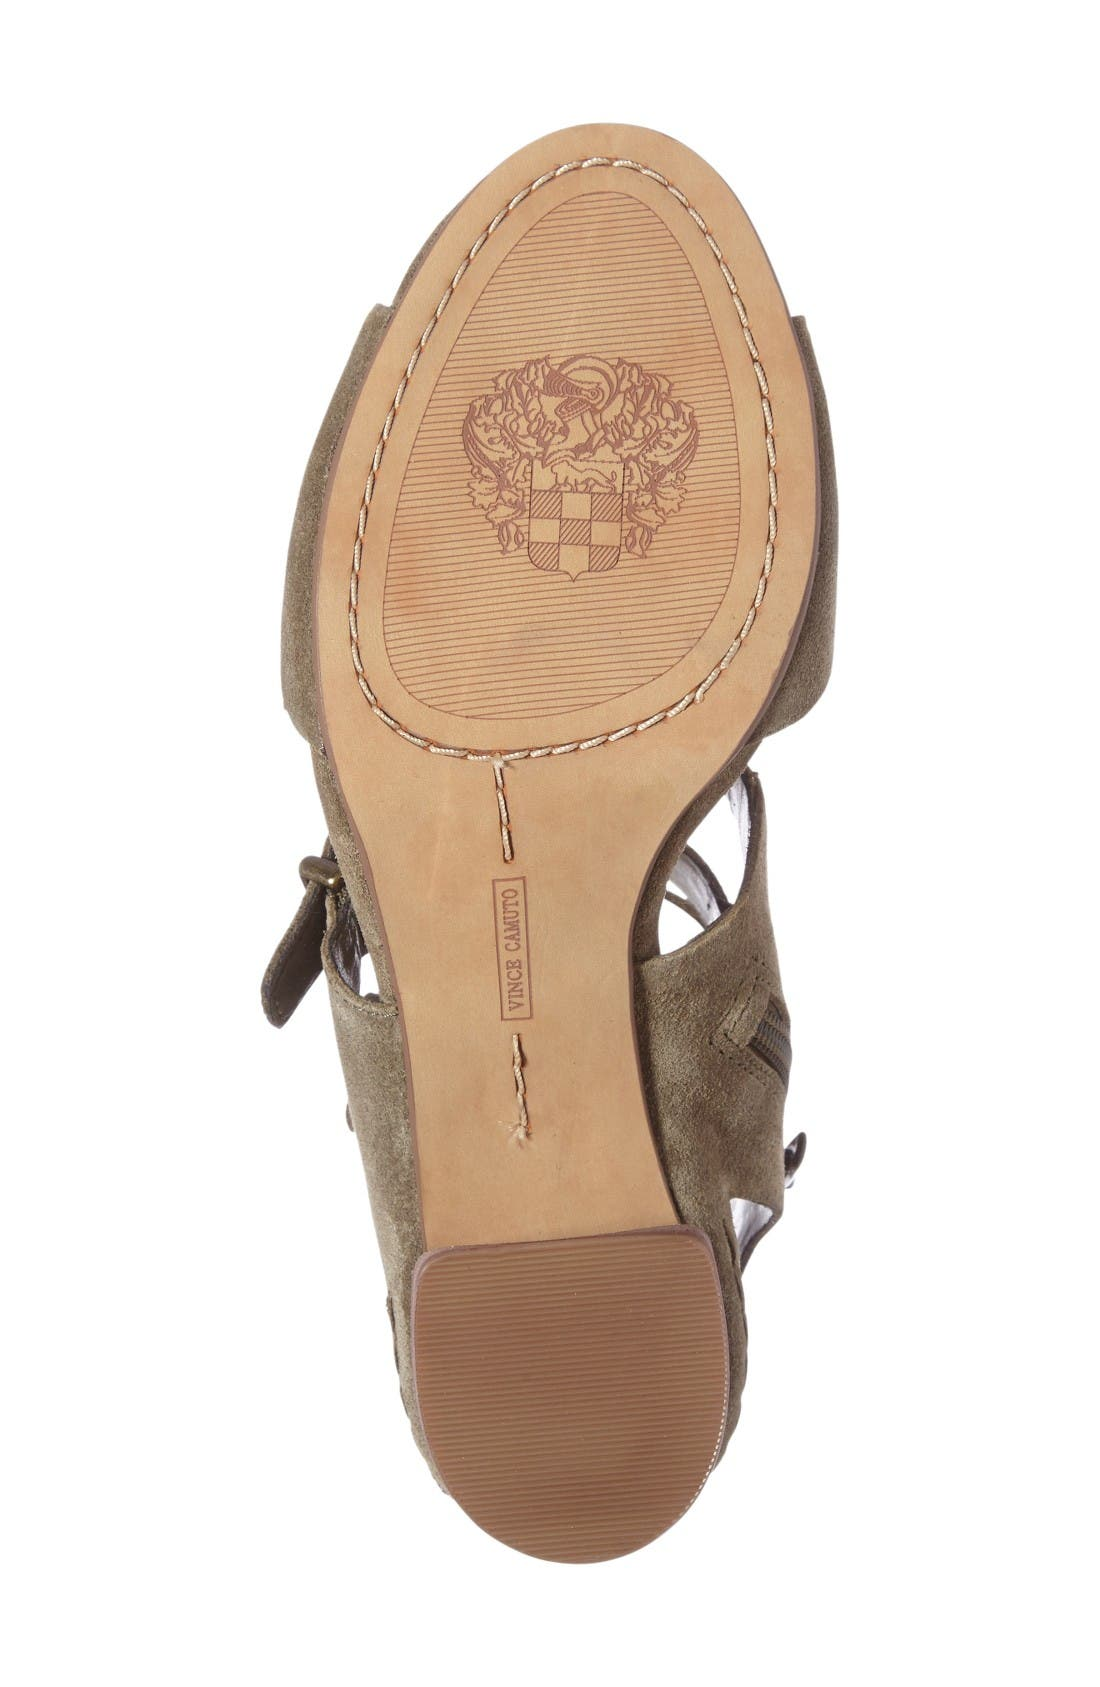 Geriann Strappy Slingback Sandal,                             Alternate thumbnail 4, color,                             Truffle Suede